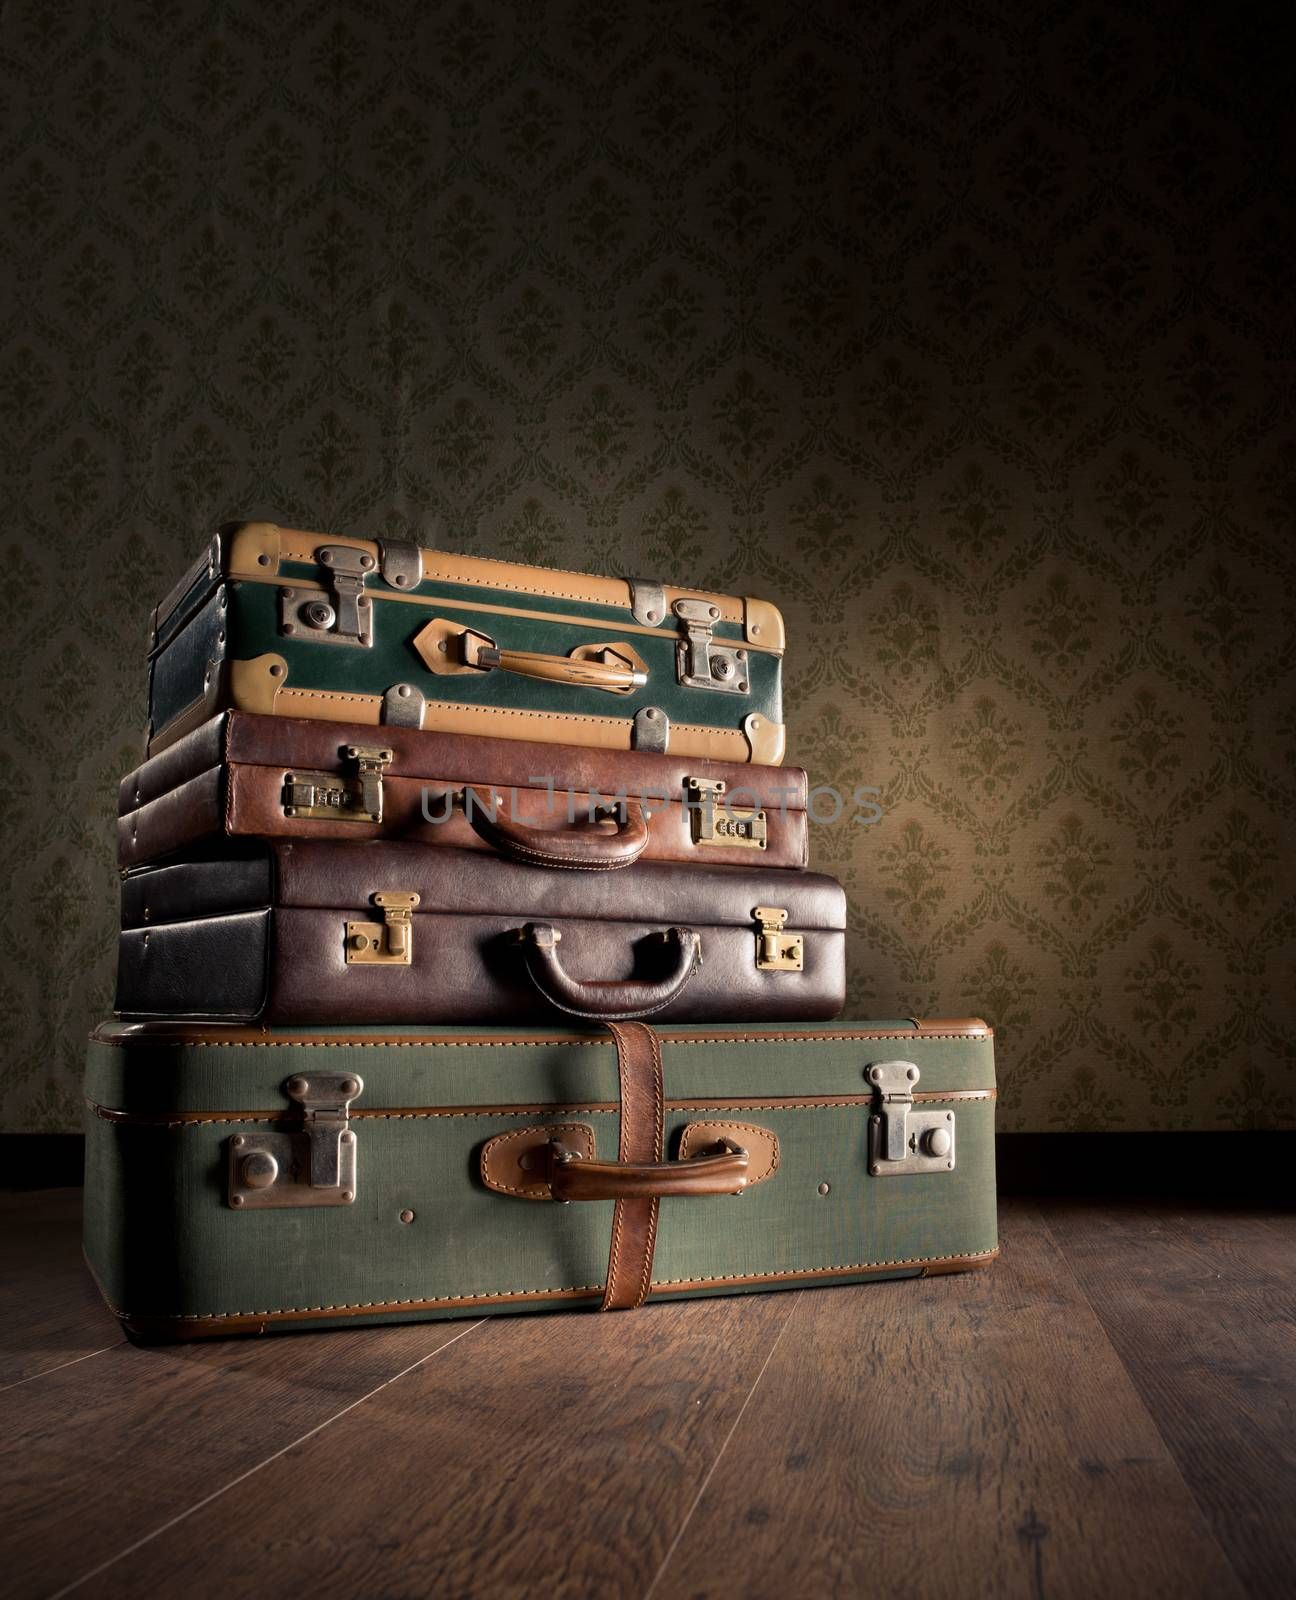 Pile of leather vintage suitcases, retro wallpaper on background.